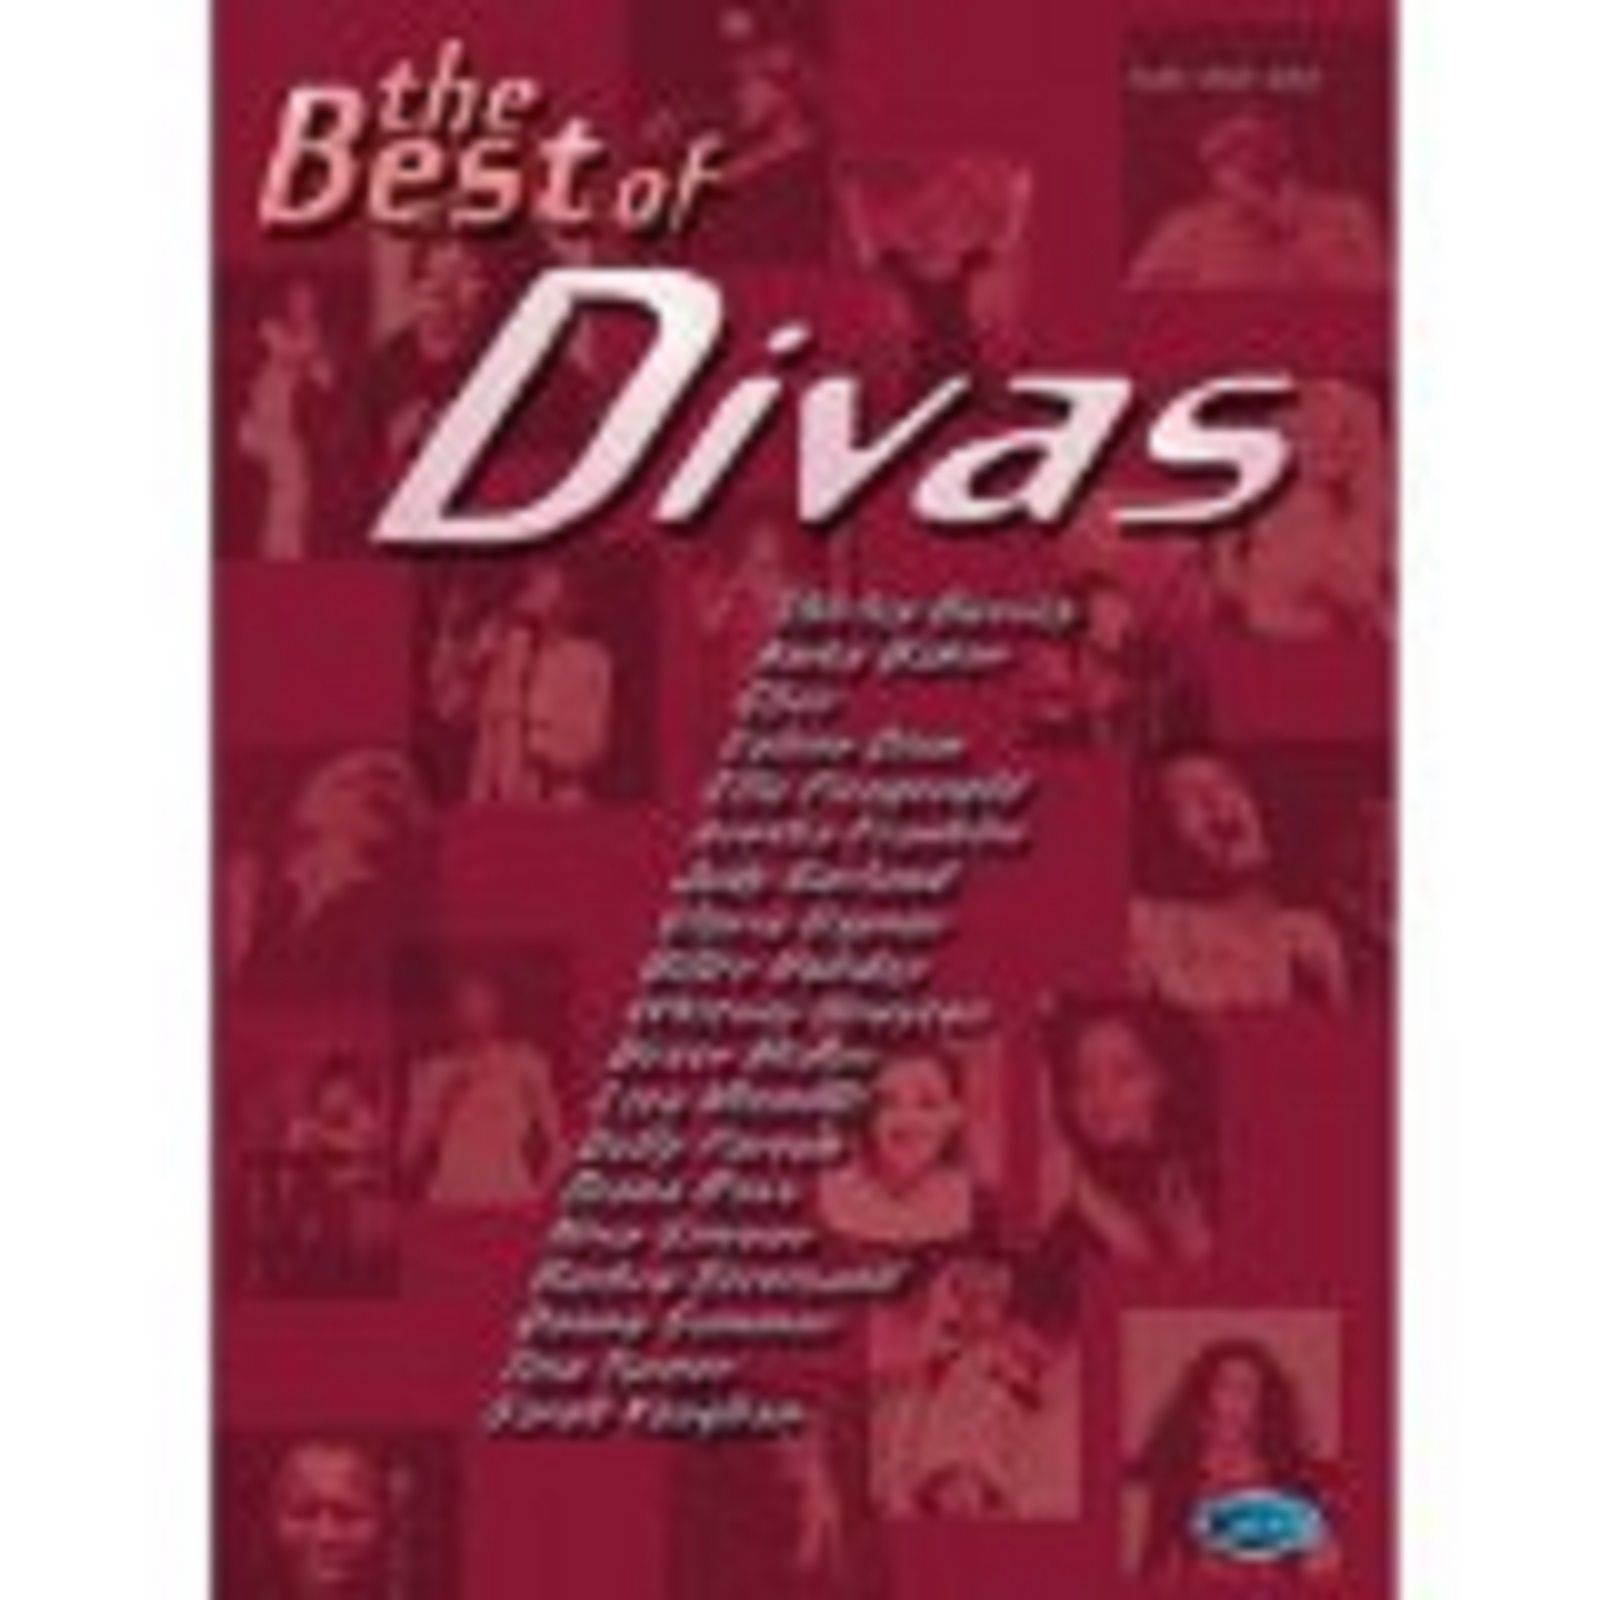 The Best Of Divas Piano Vocal Guitar Sheet Music Songbook S14